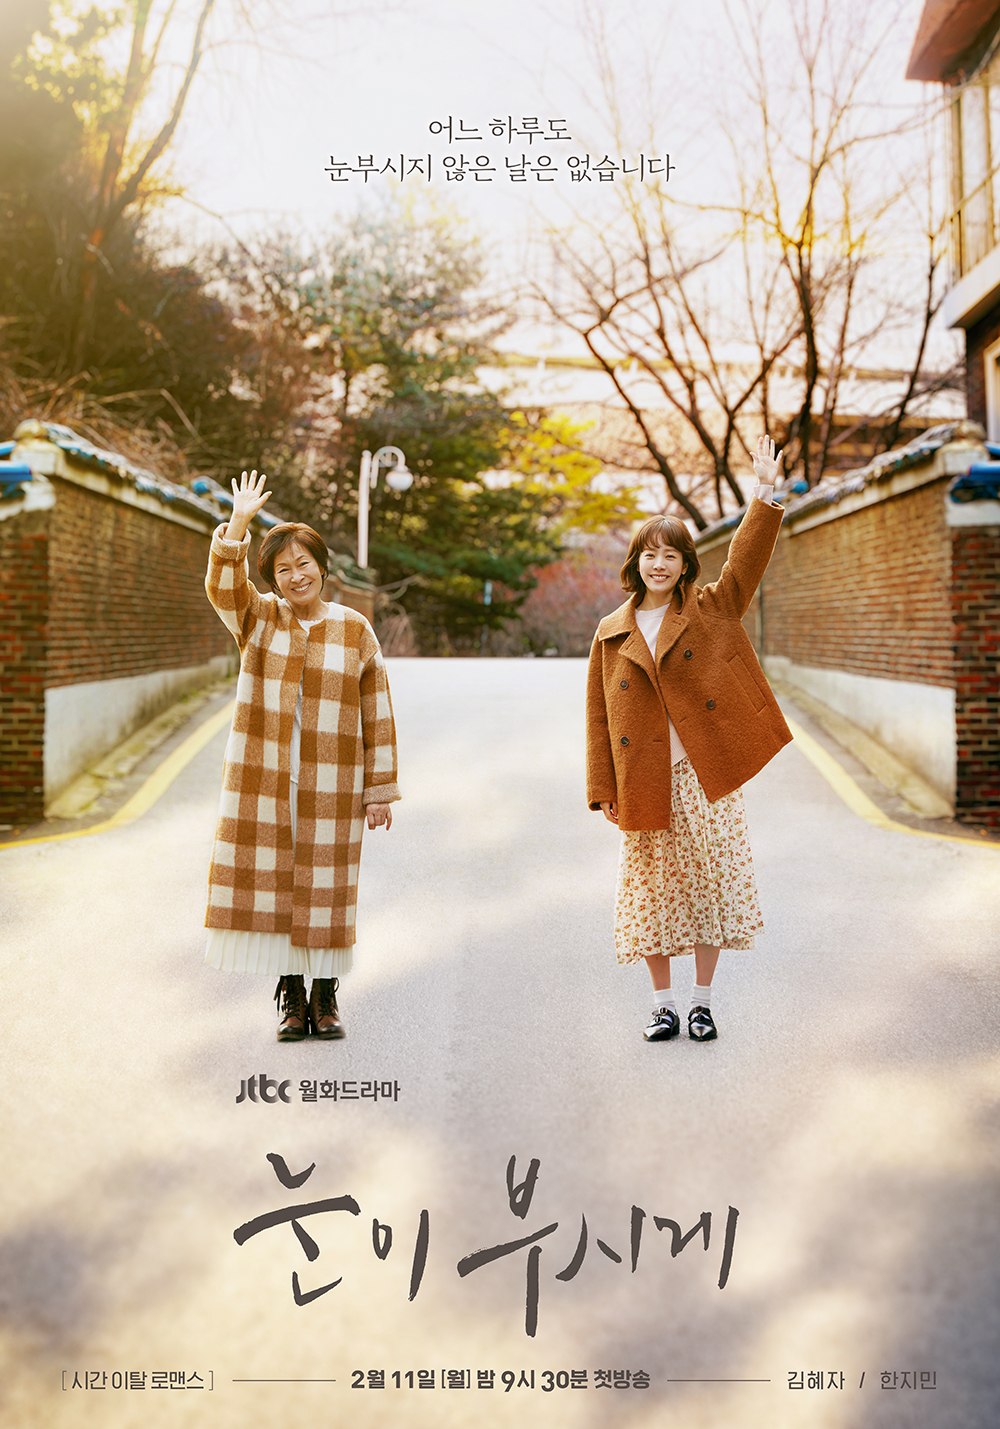 Drama 2019] The Light In Your Eyes, 눈이 부시게 - k-dramas